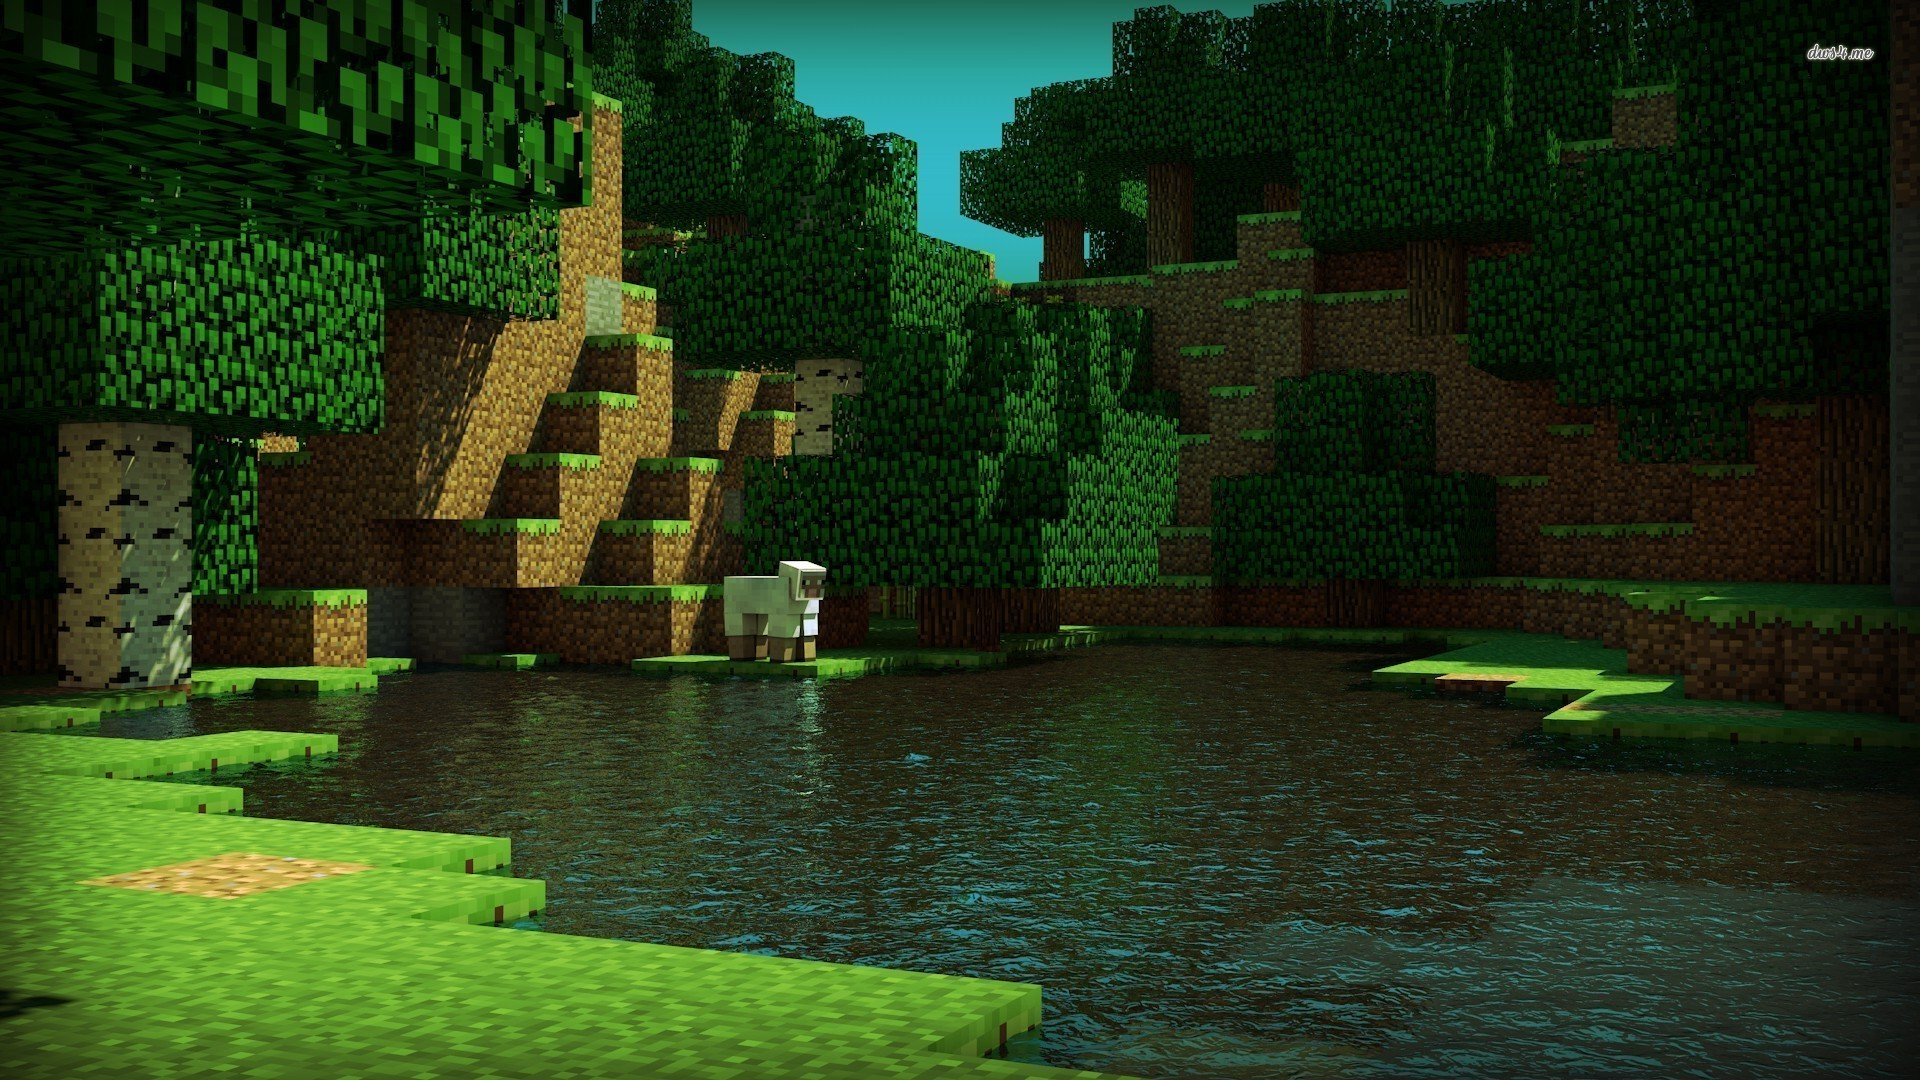 1920x1080  Minecraft Backgrounds Wallpaper | HD Wallpapers | Pinterest | Minecraft  wallpaper, Wallpaper and Wallpapers android